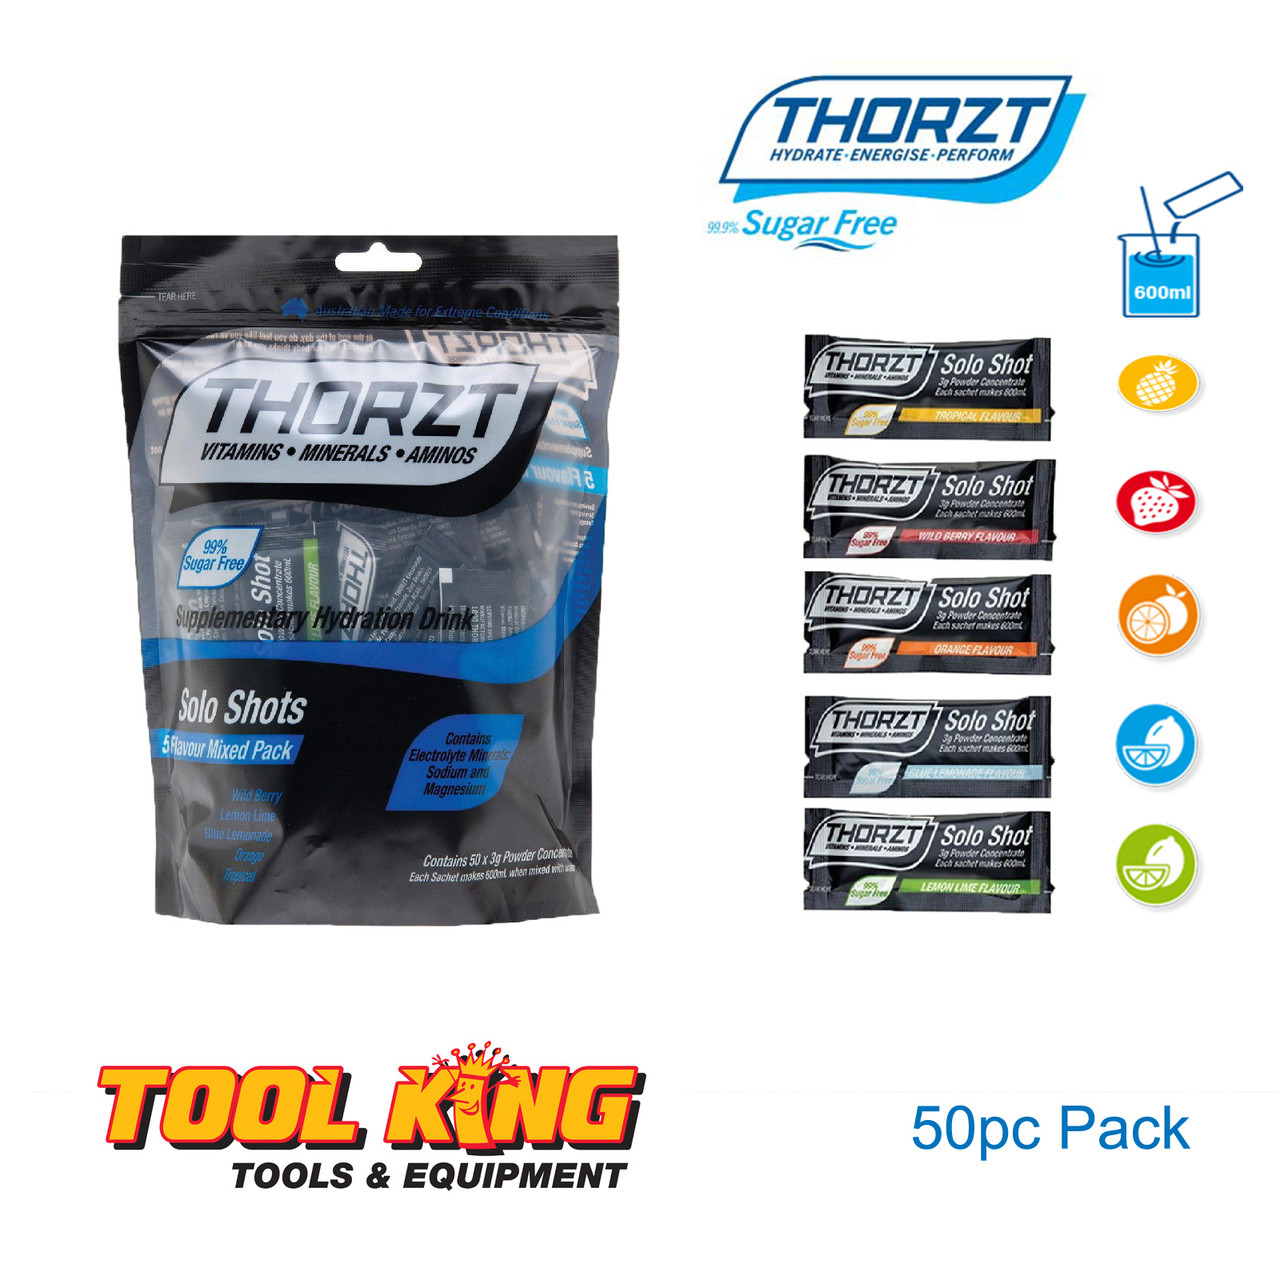 Thorzt SUGAR FREE Hydration Electrolite drink 50 mixed pack Ideal for tradies Mines and Sports